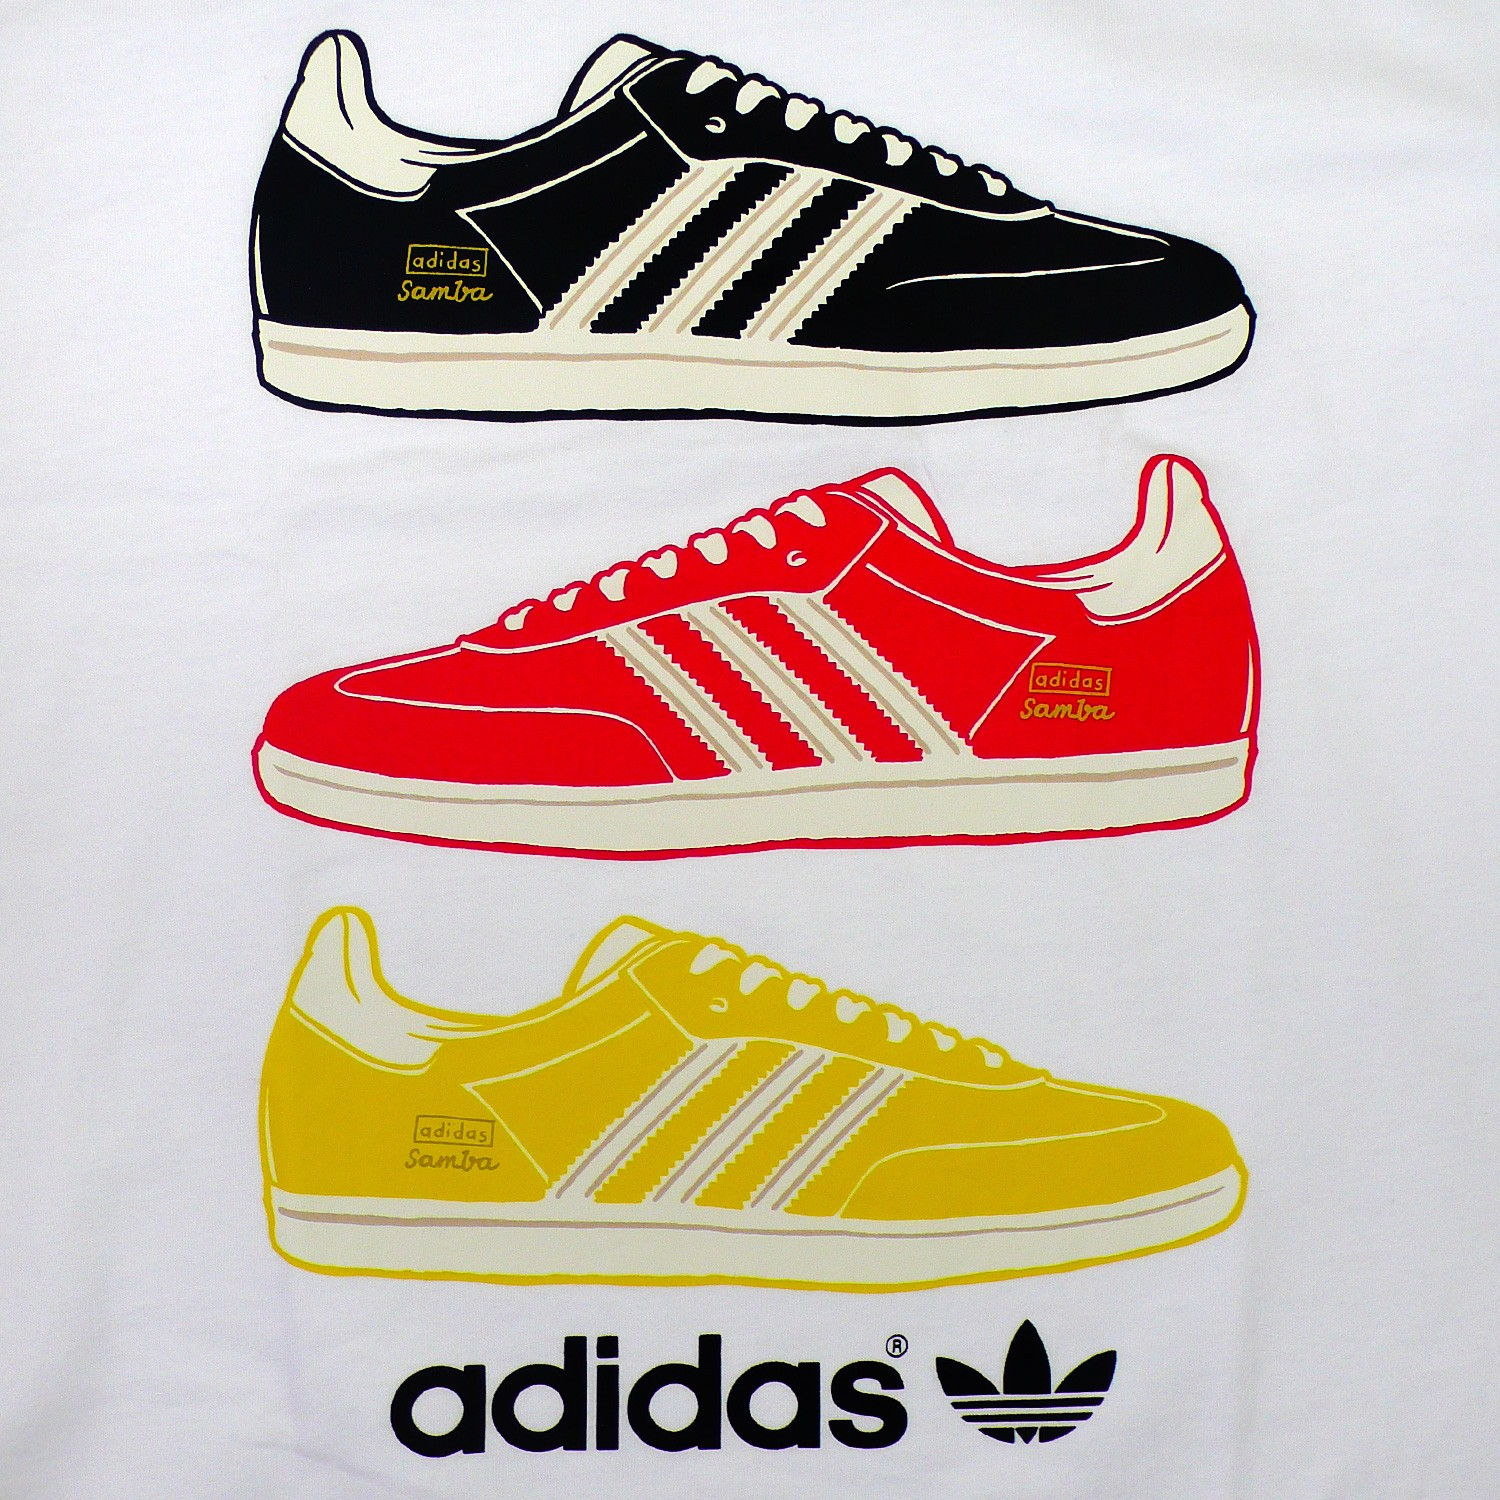 2016 Shirt Adidas Country Deutschland Schuhe Em Tee Originals Germany T Samba zMSqUVp